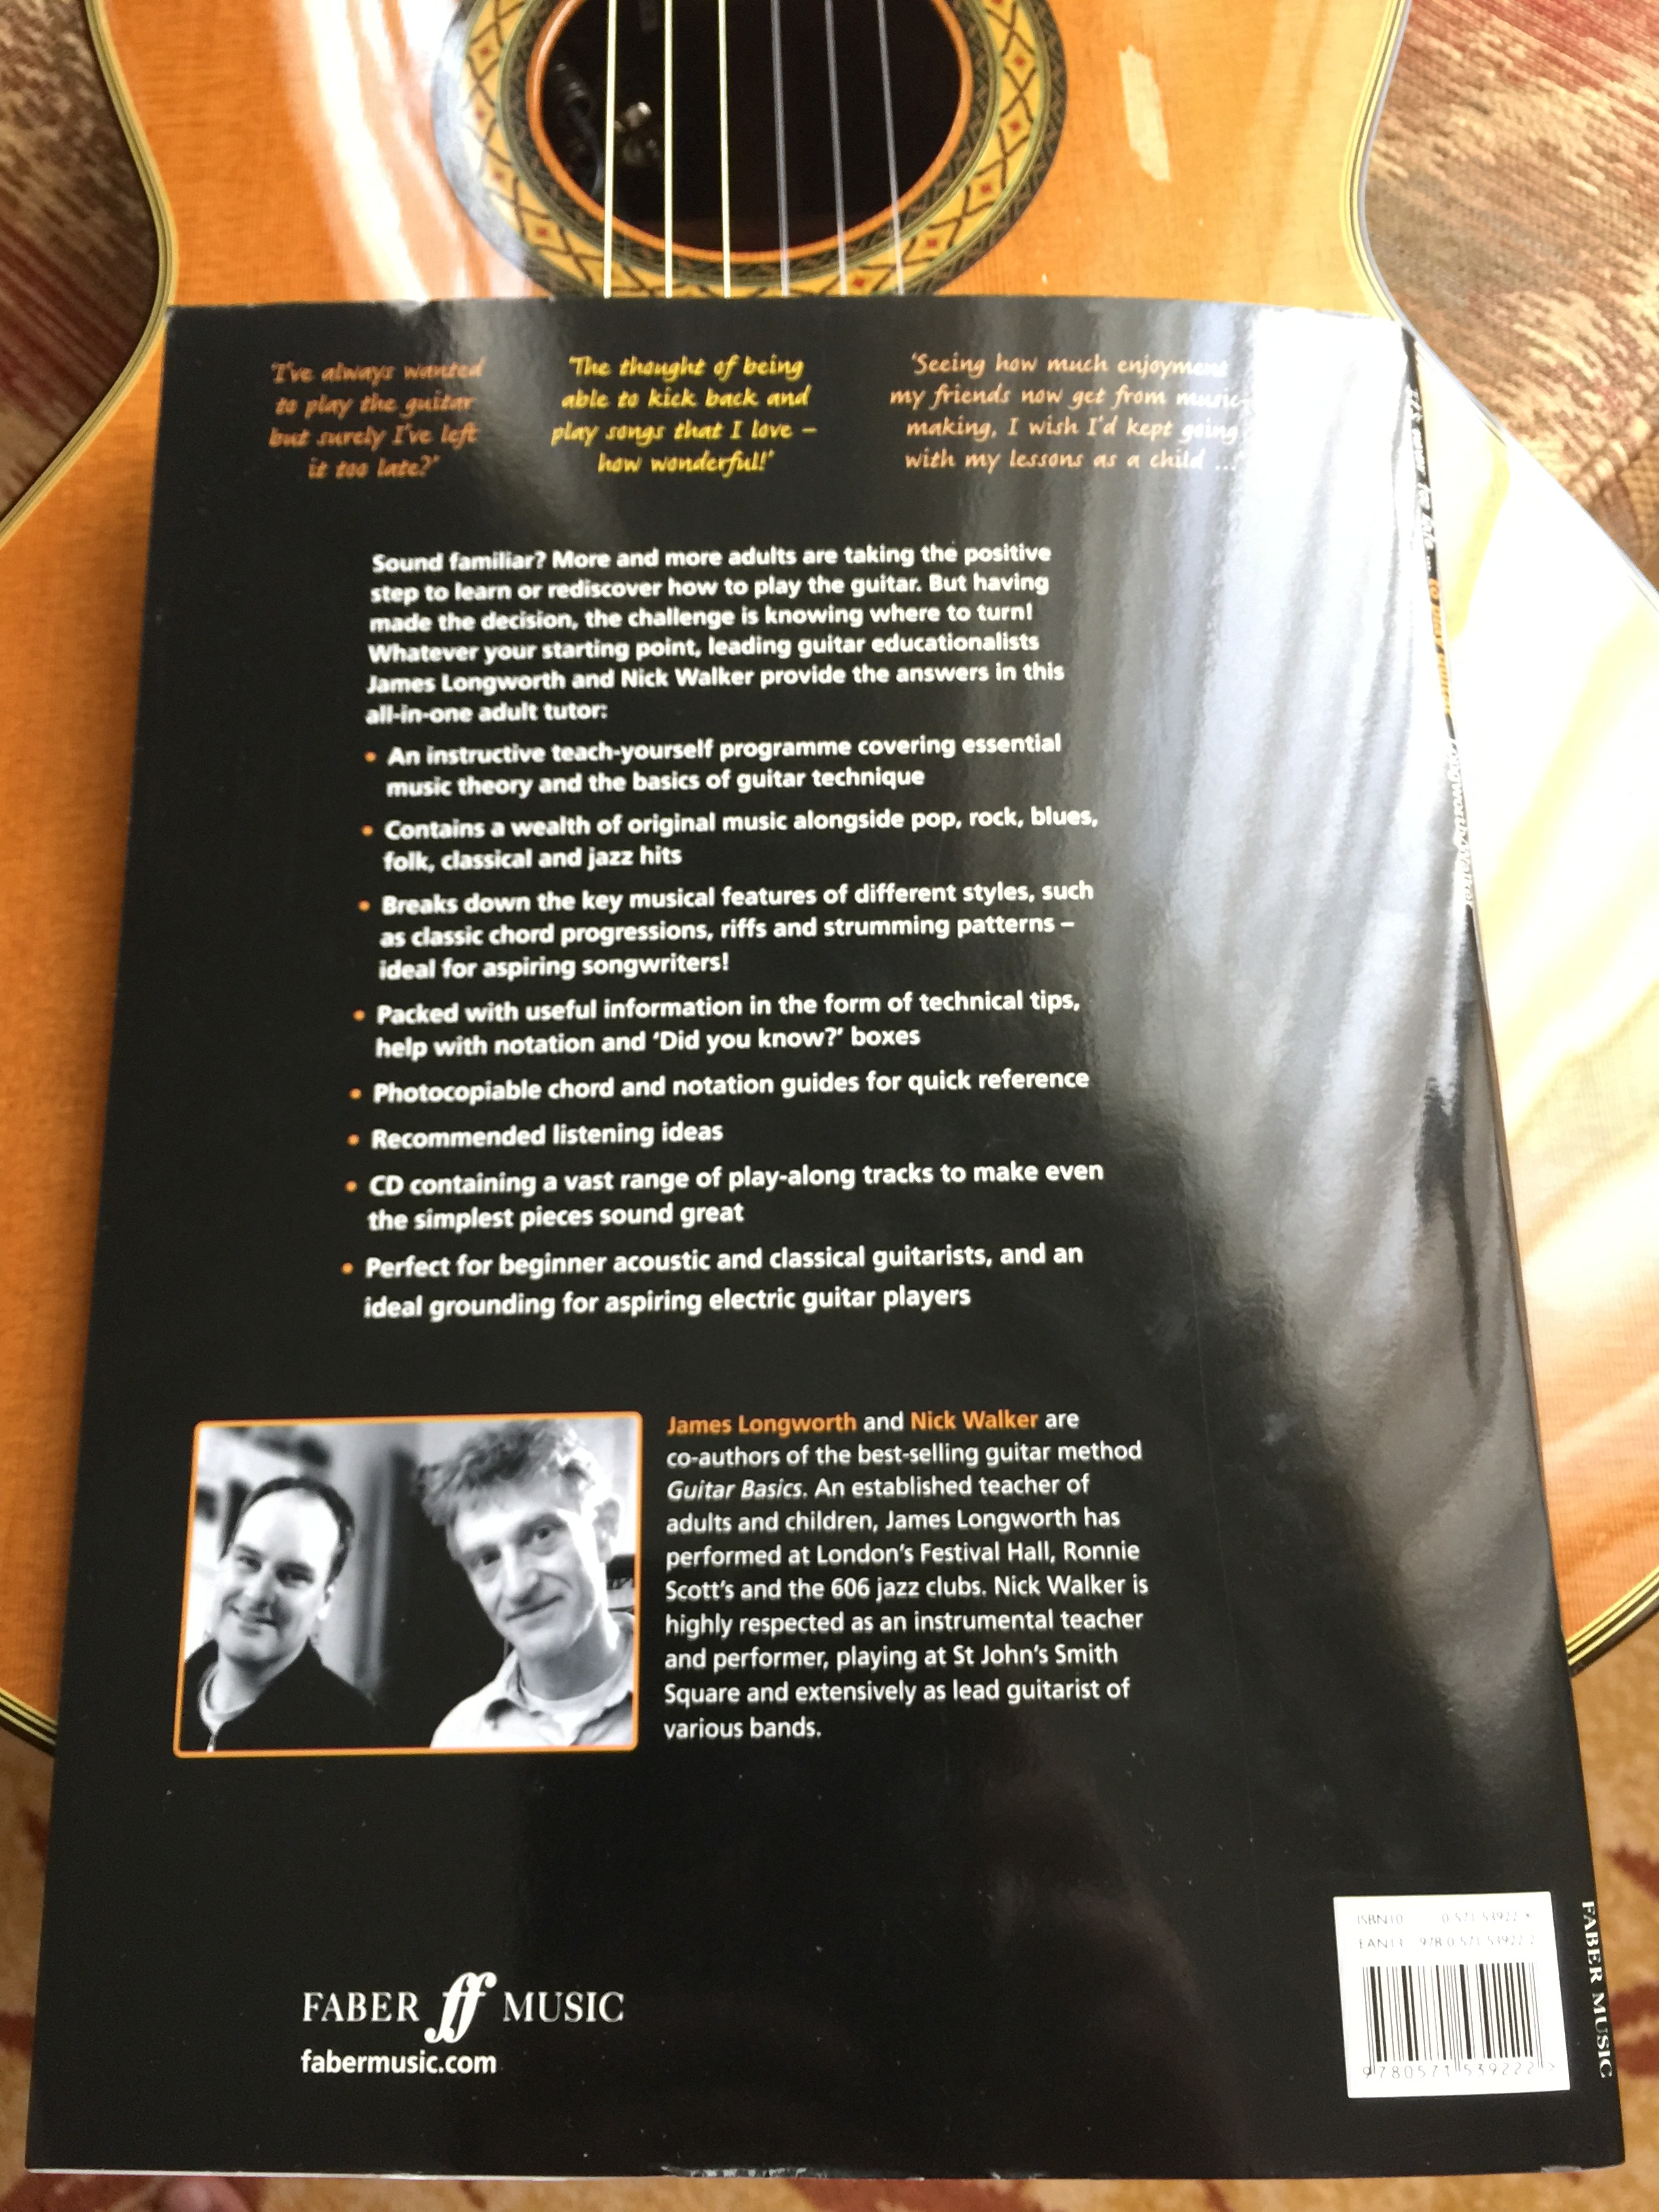 A glimpse of the authors of this exciting new guitar method book.